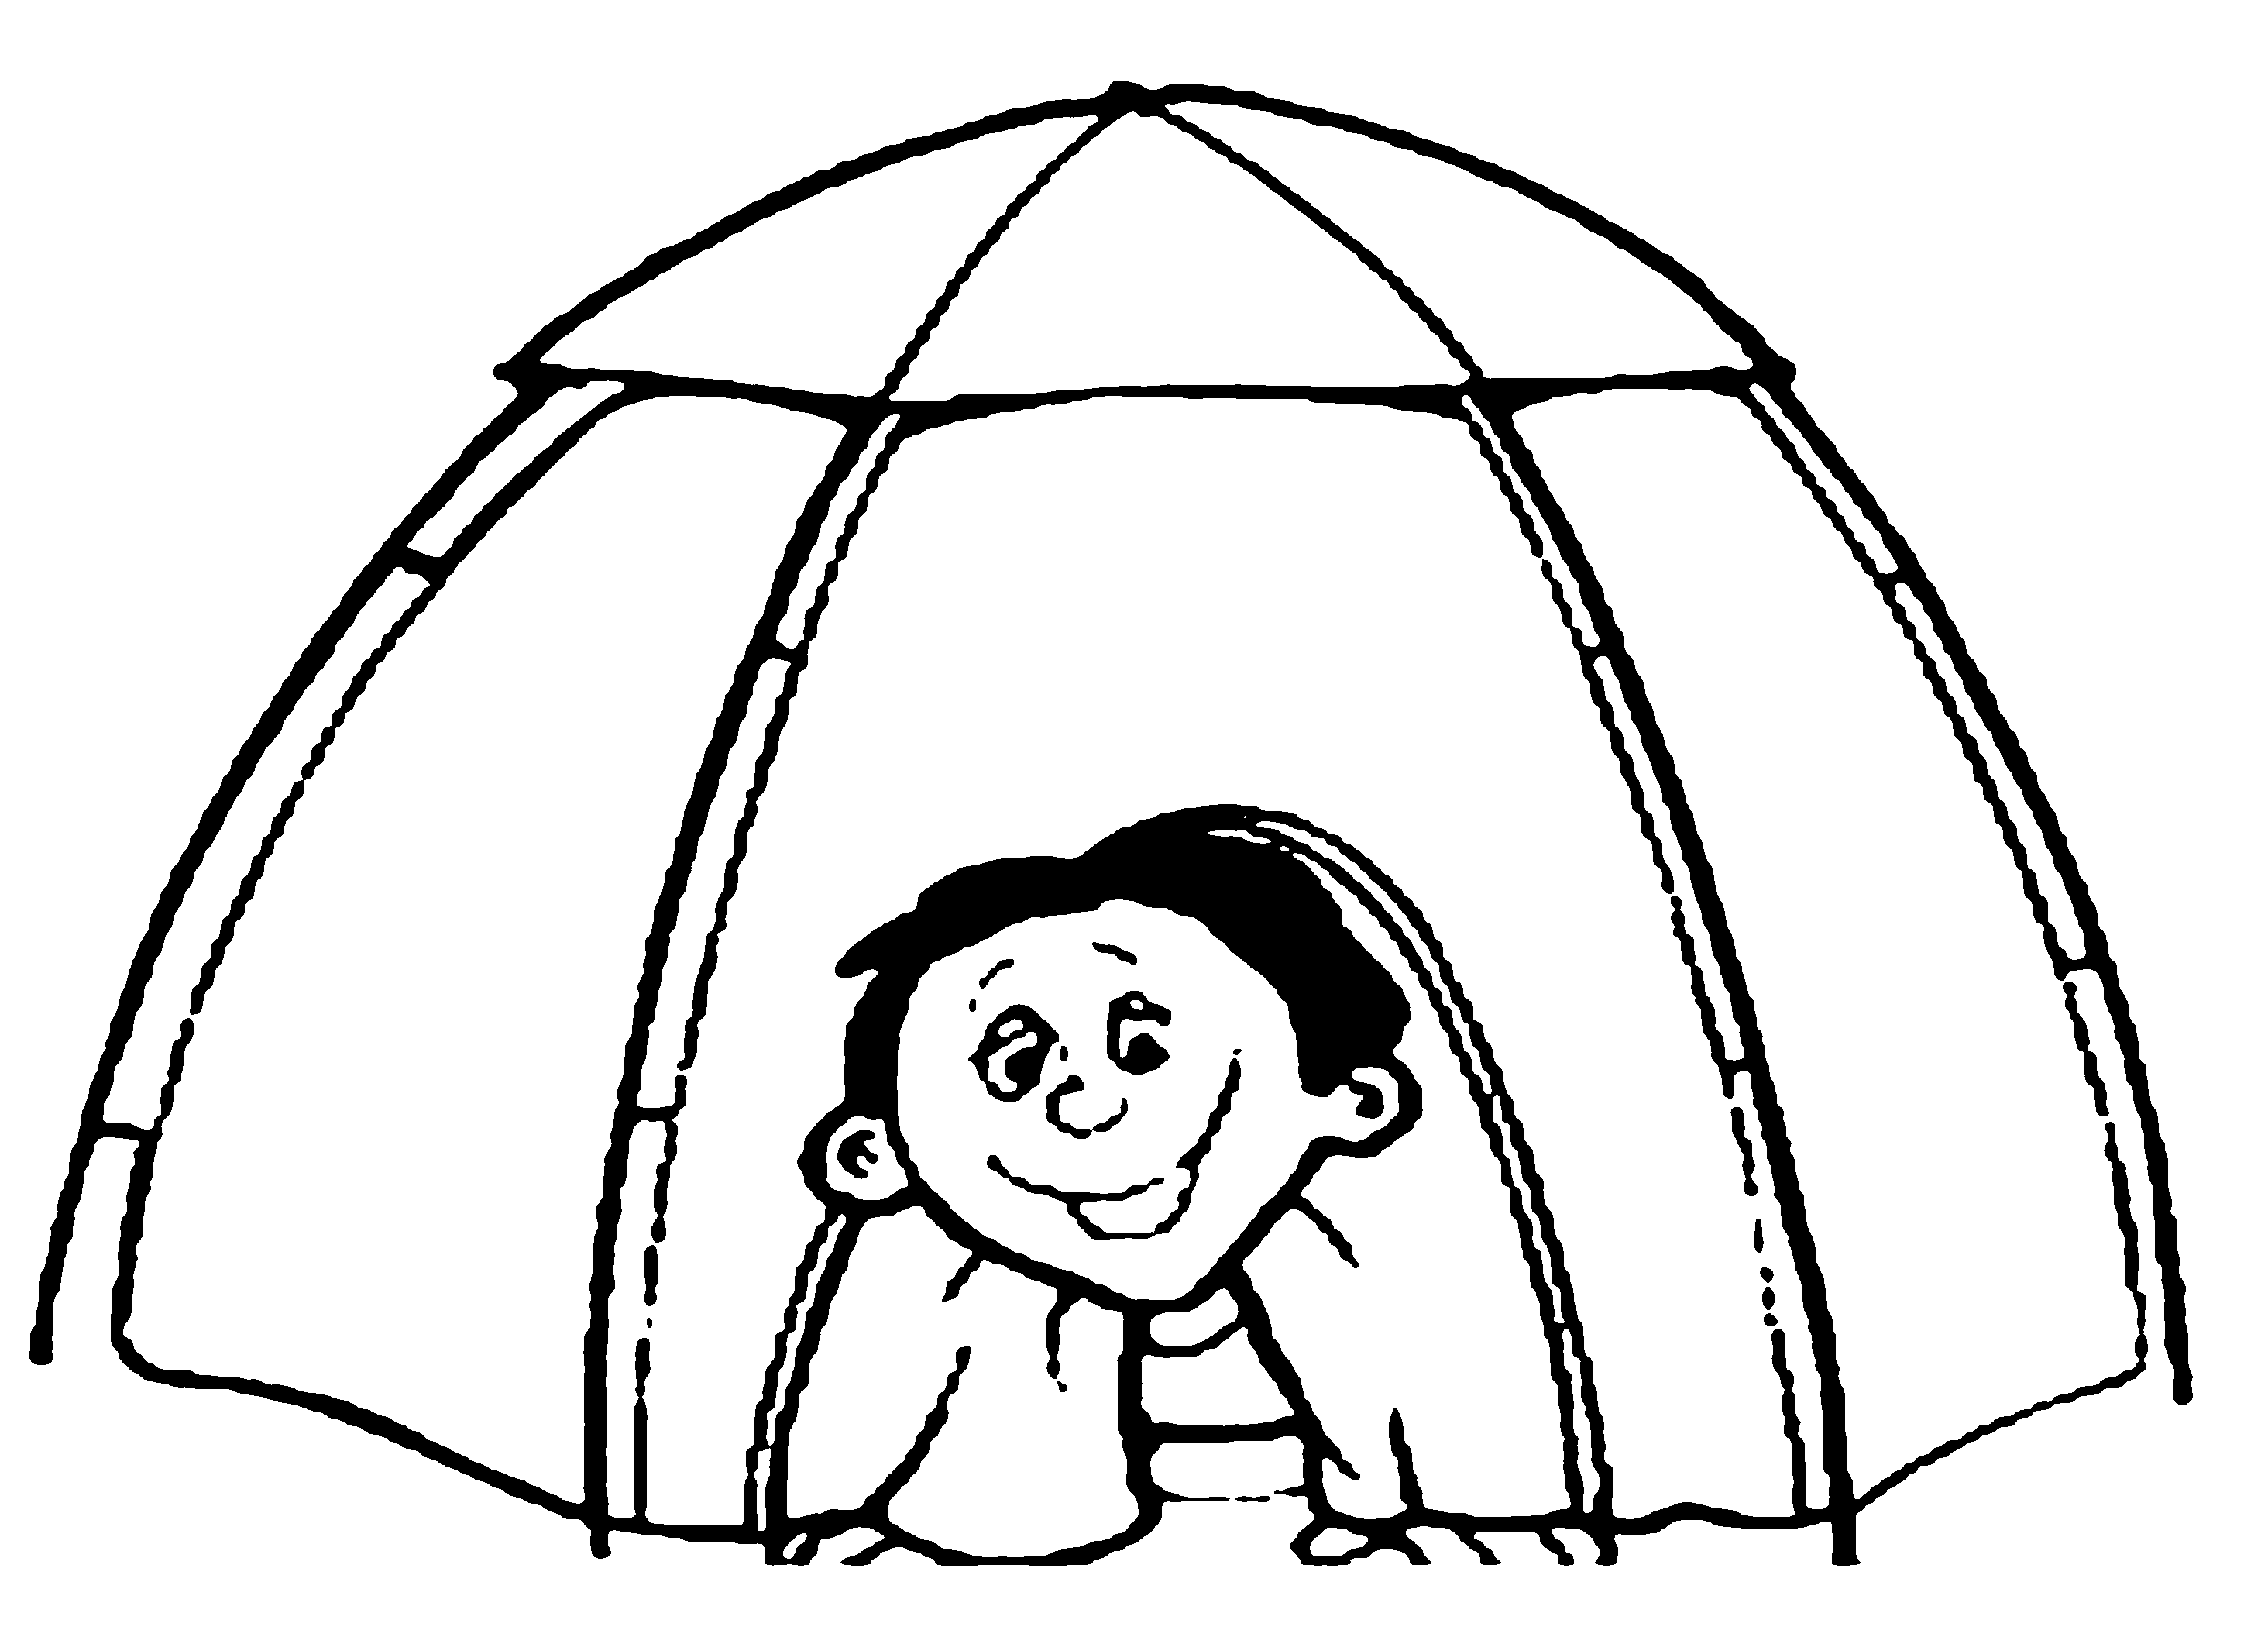 Camping Tent Coloring Pages To Print